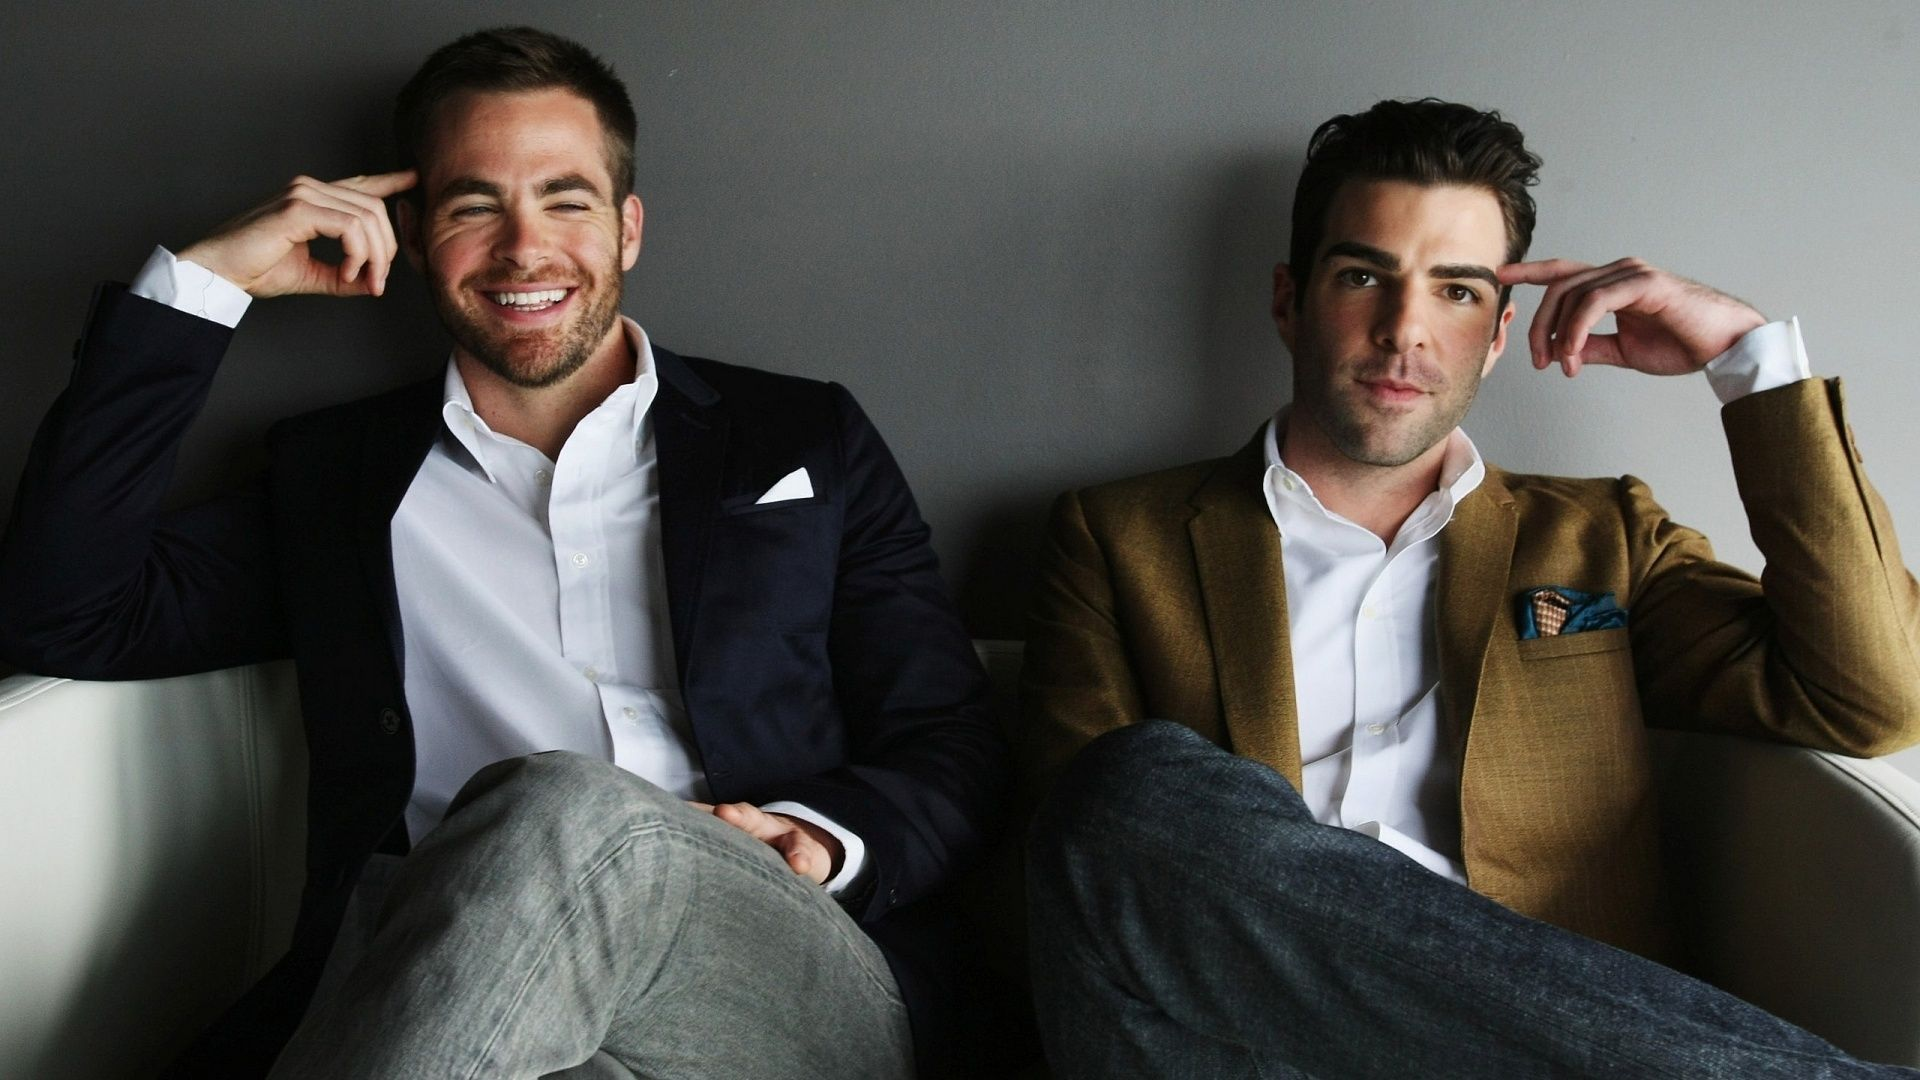 zachary quinto dating chris pine